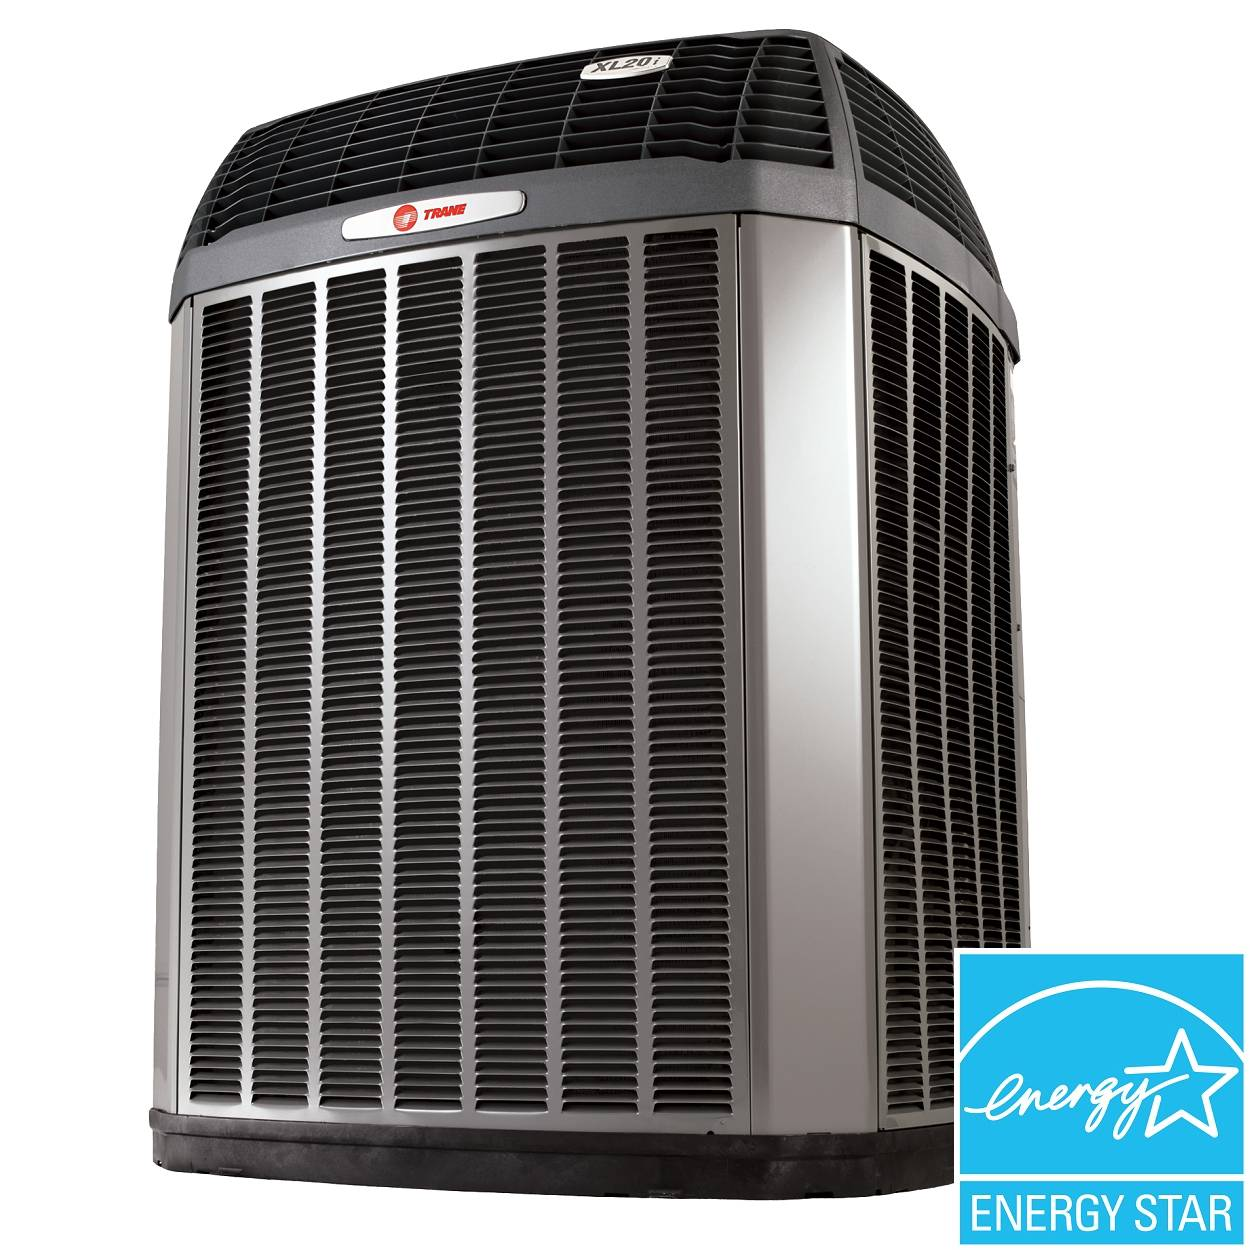 XV20i TruComfort Variable Sd Trane Air Conditioner - Up ... on trane parts store, trane xr13 rating, trane air conditioners, trane two-stage heat pumps, trane commercial technical support, trane model xr15, trane 17 seer heat pump, trane service manuals, trane commercial package units, trane xr15 vs xr13,